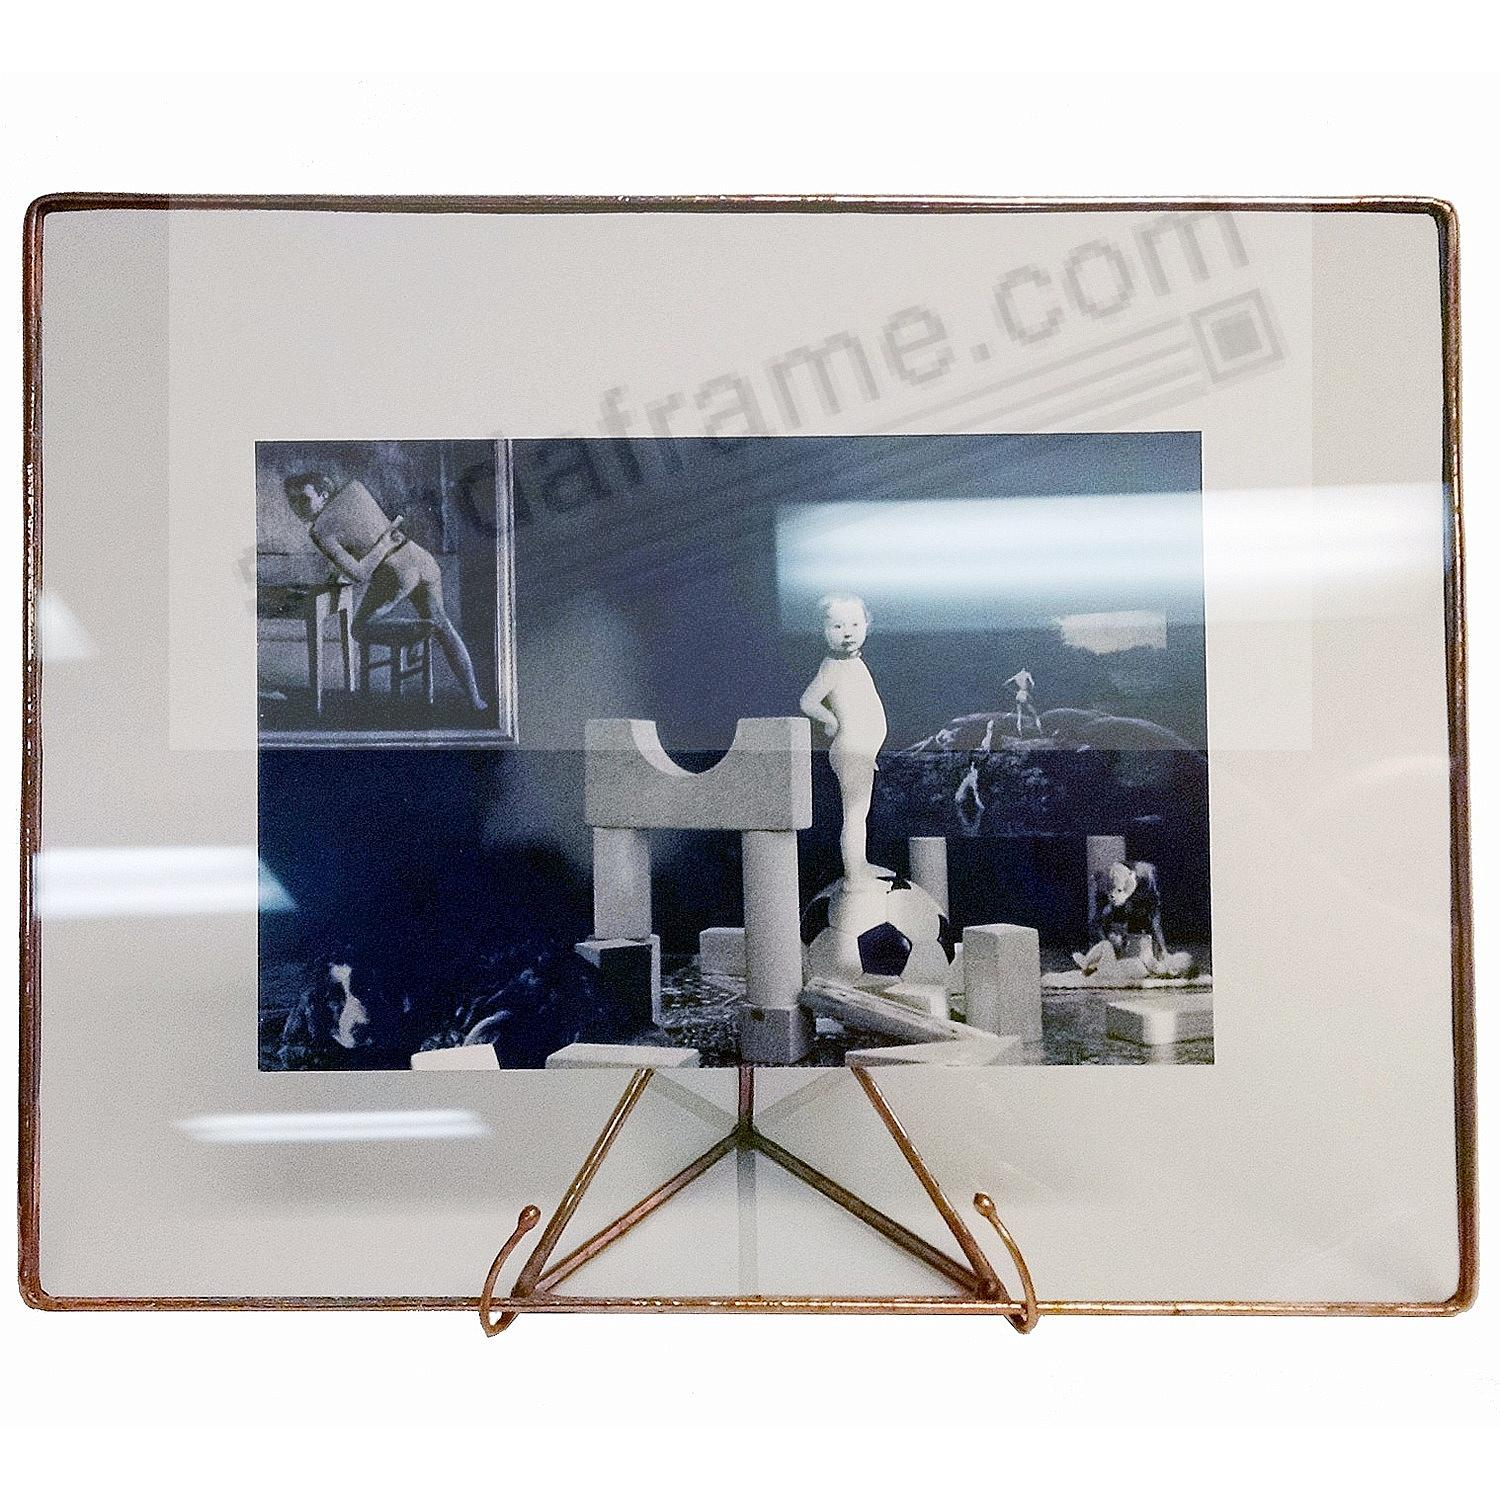 COPPER / CLEAR GLASS Float 7x9/5x7 Frame by Bedford Downing®